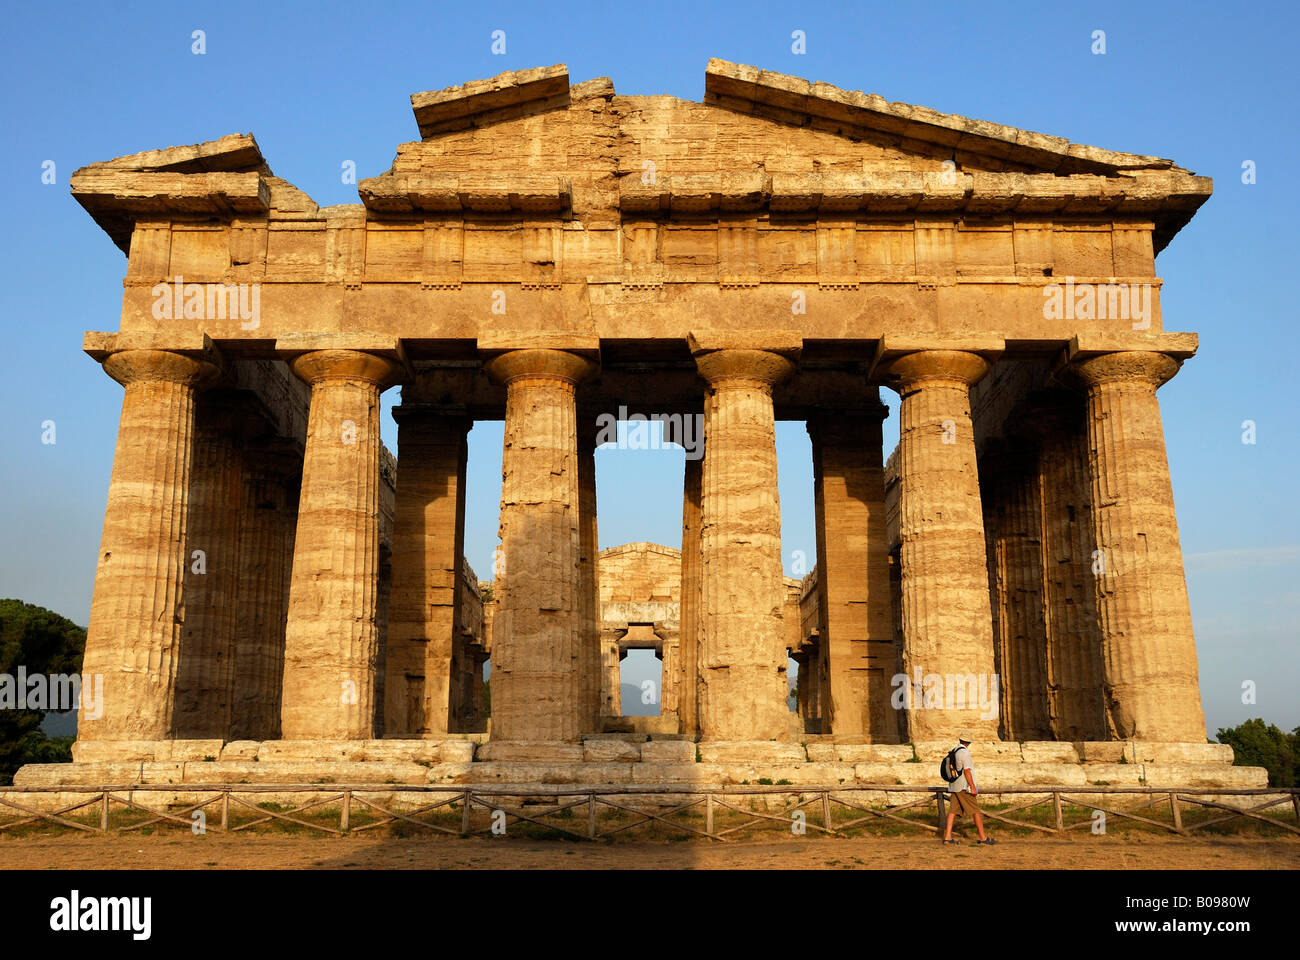 Ruins of Greco-Roman architecture, Paestum, Province of Salerno, Campania, Southern Italy - Stock Image